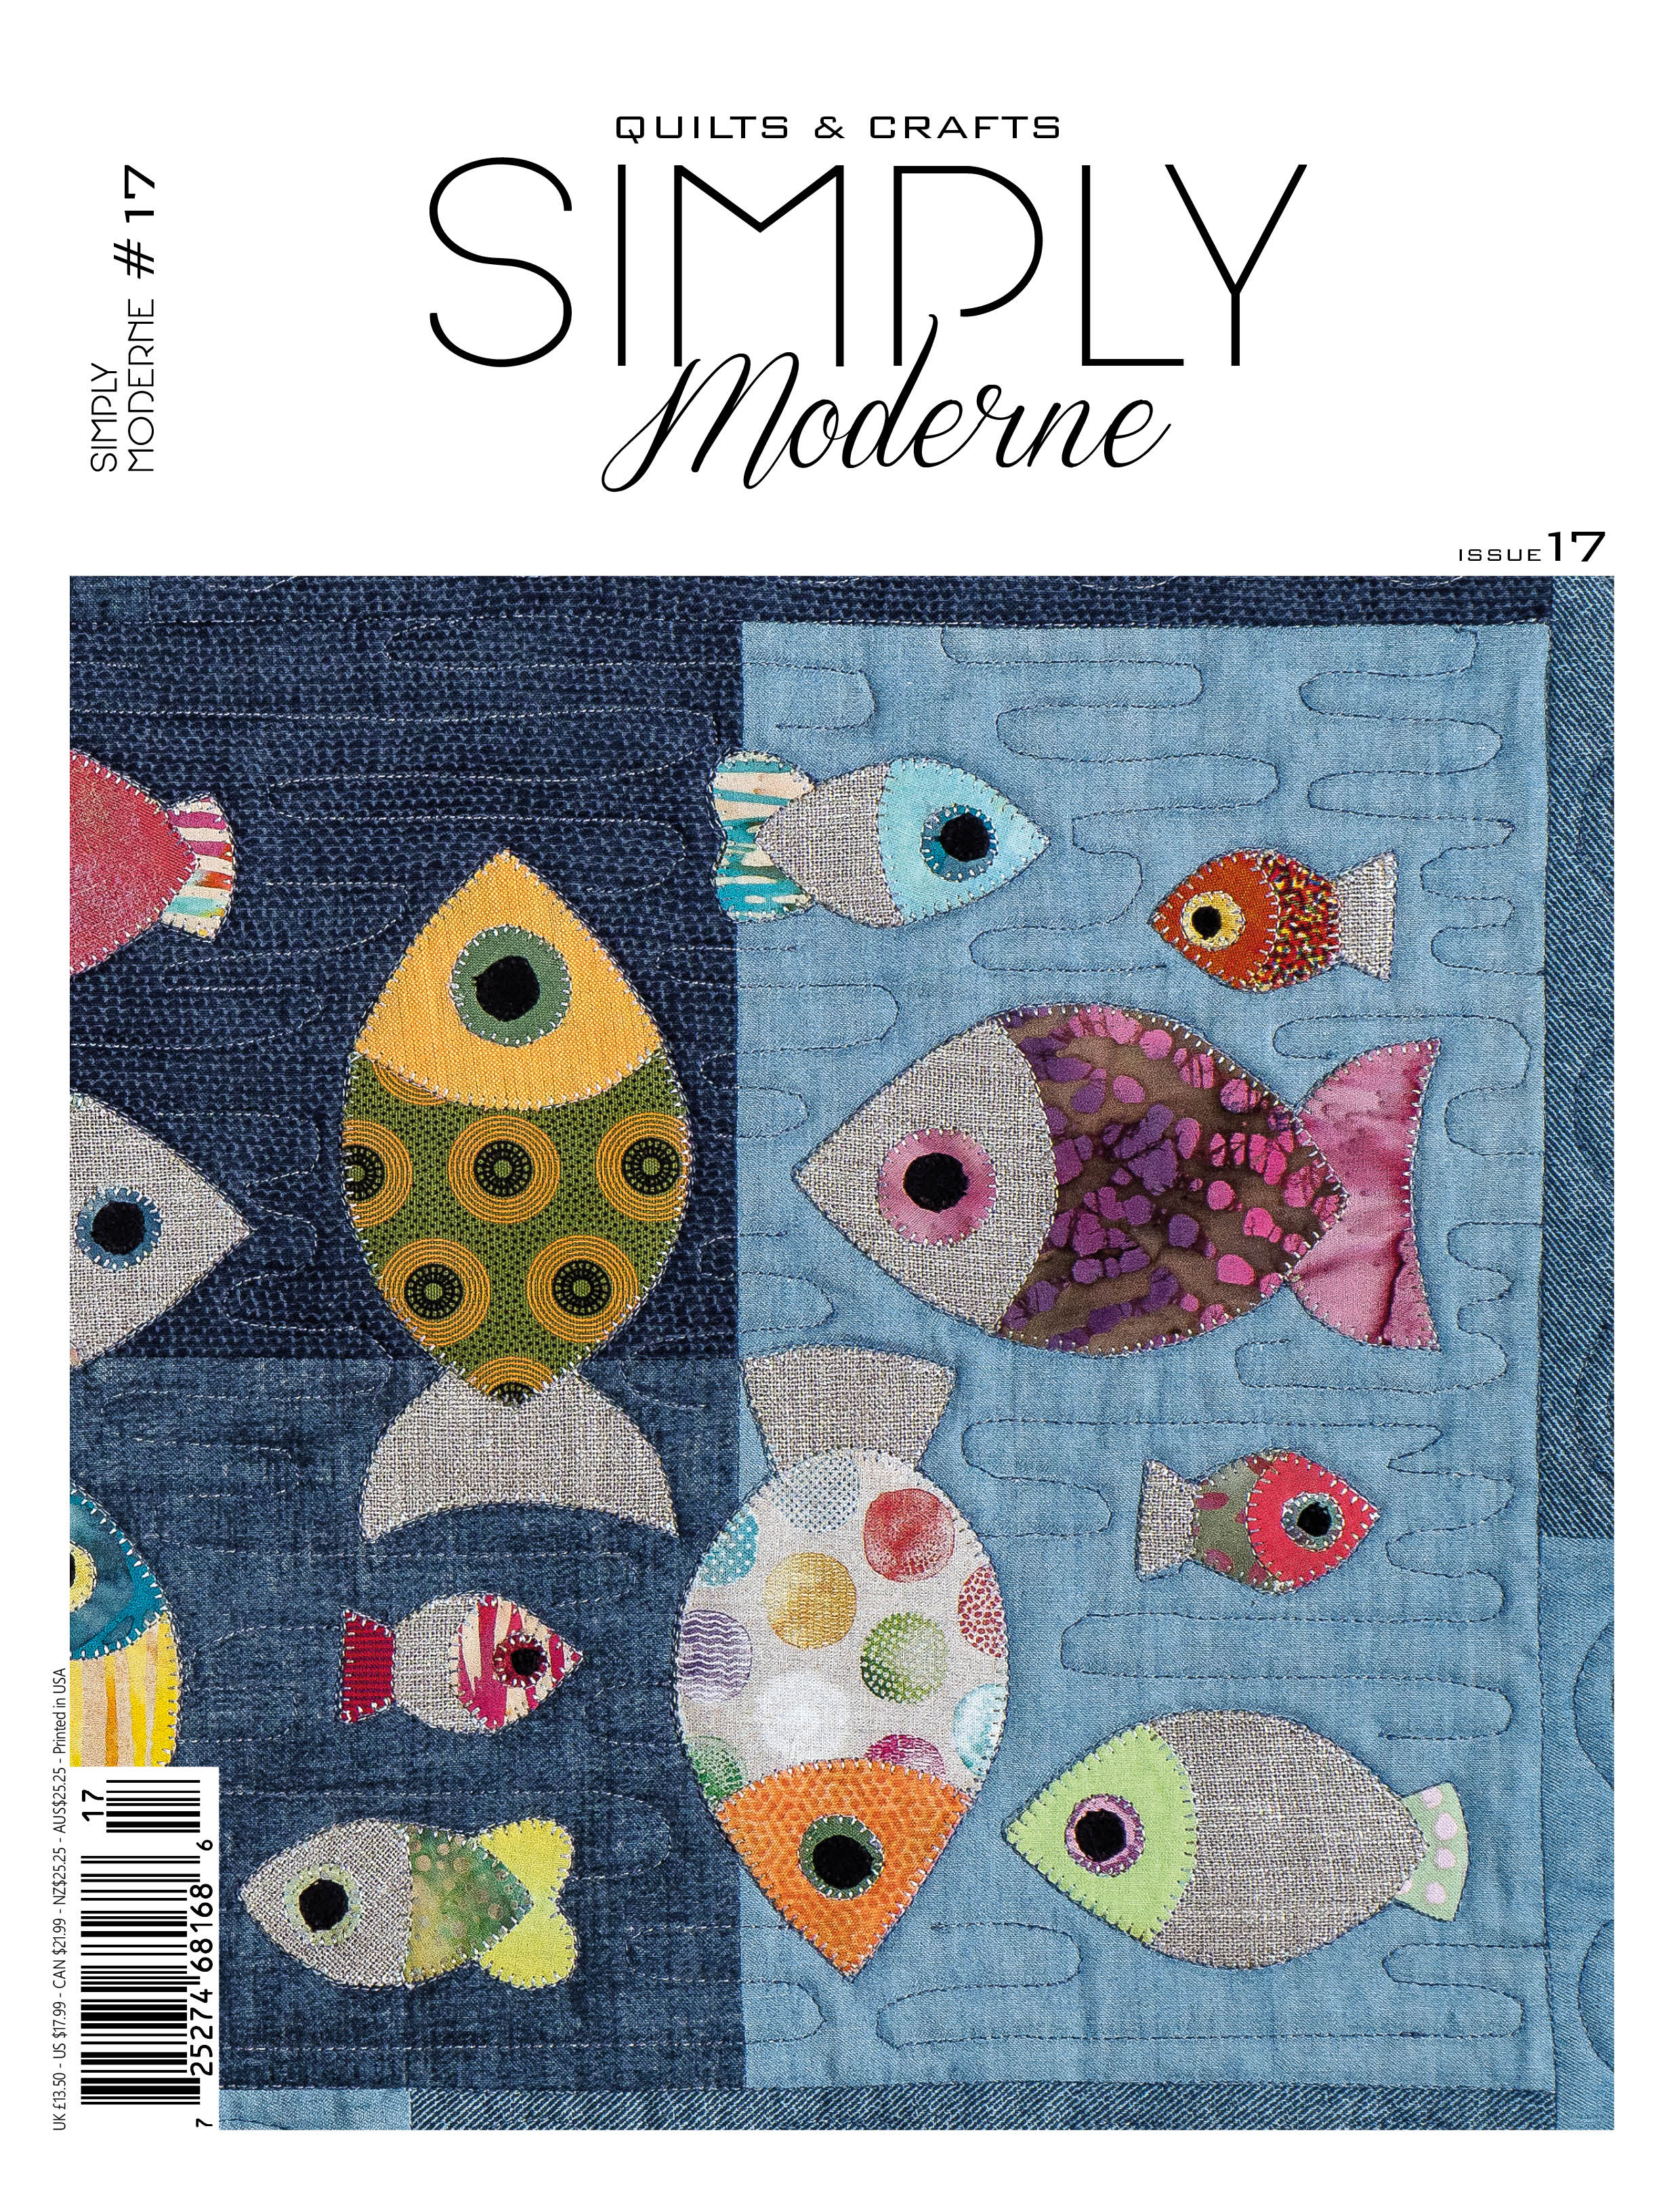 Simply Moderne issue number 17, featuring Zen Chic's contribution, the DELIGHT quilt pattern and several other inspiring, stunning projects from talented designers.